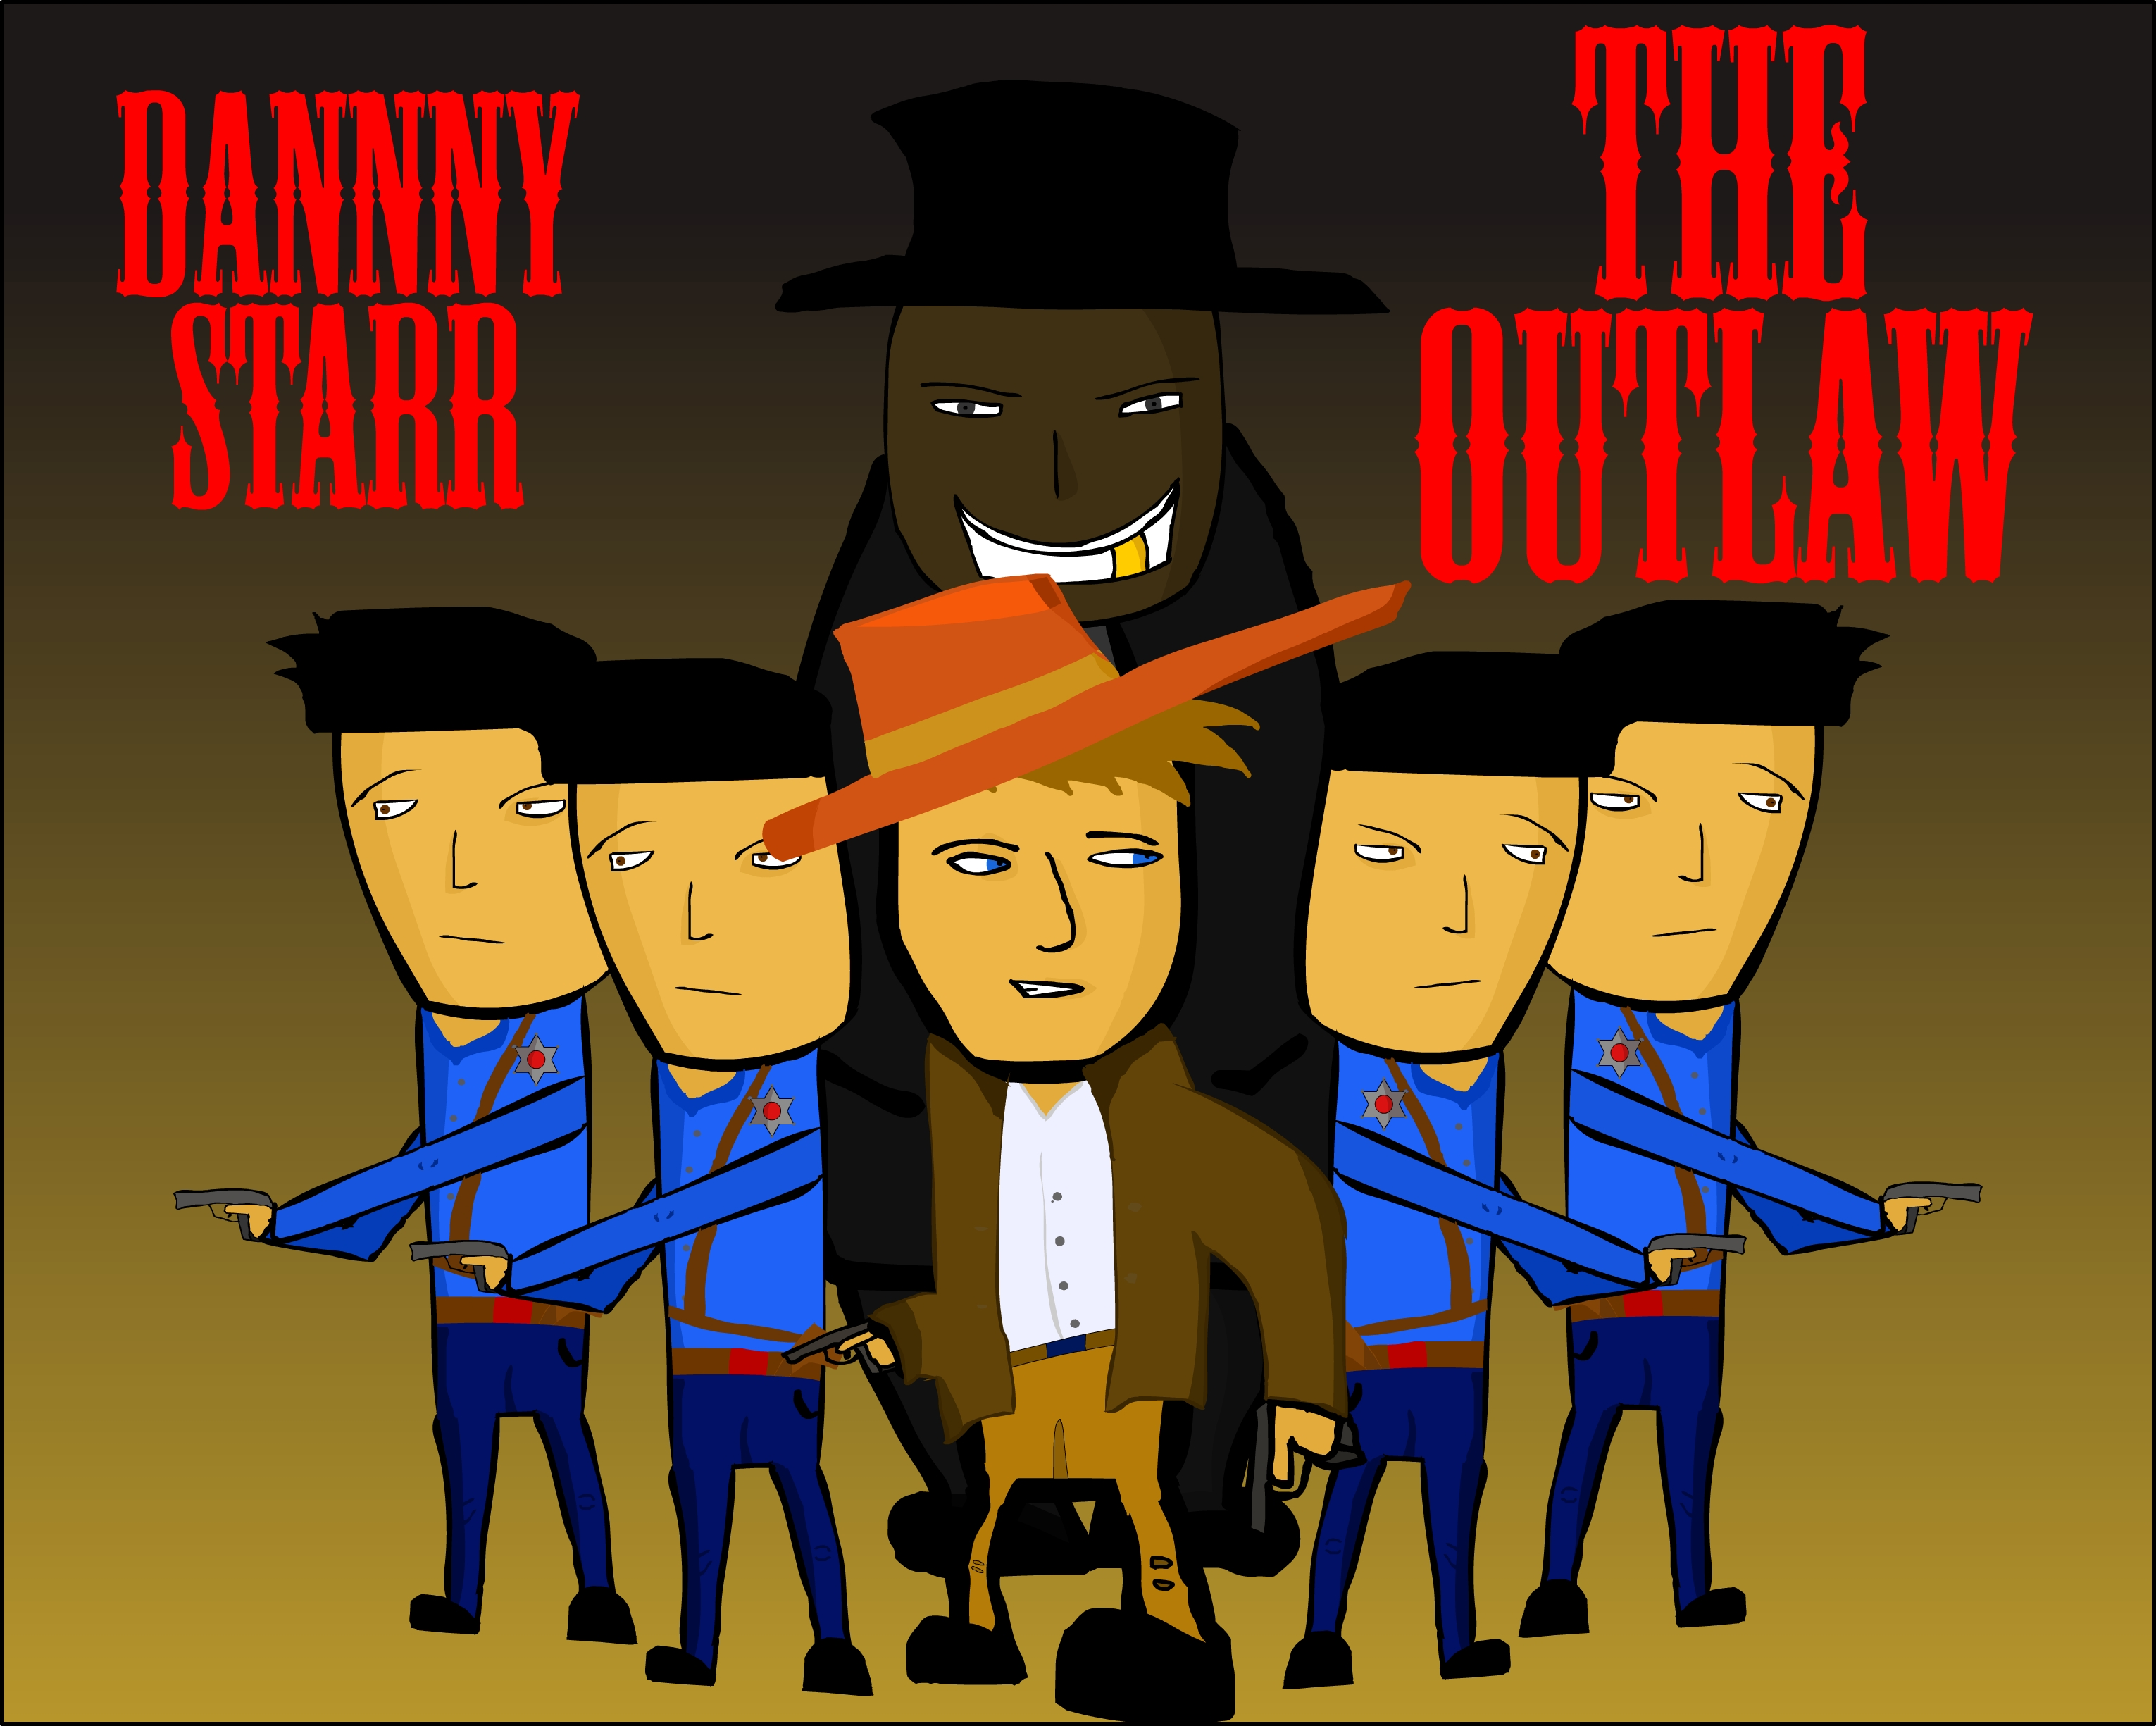 Danny Starr the OUTLAW